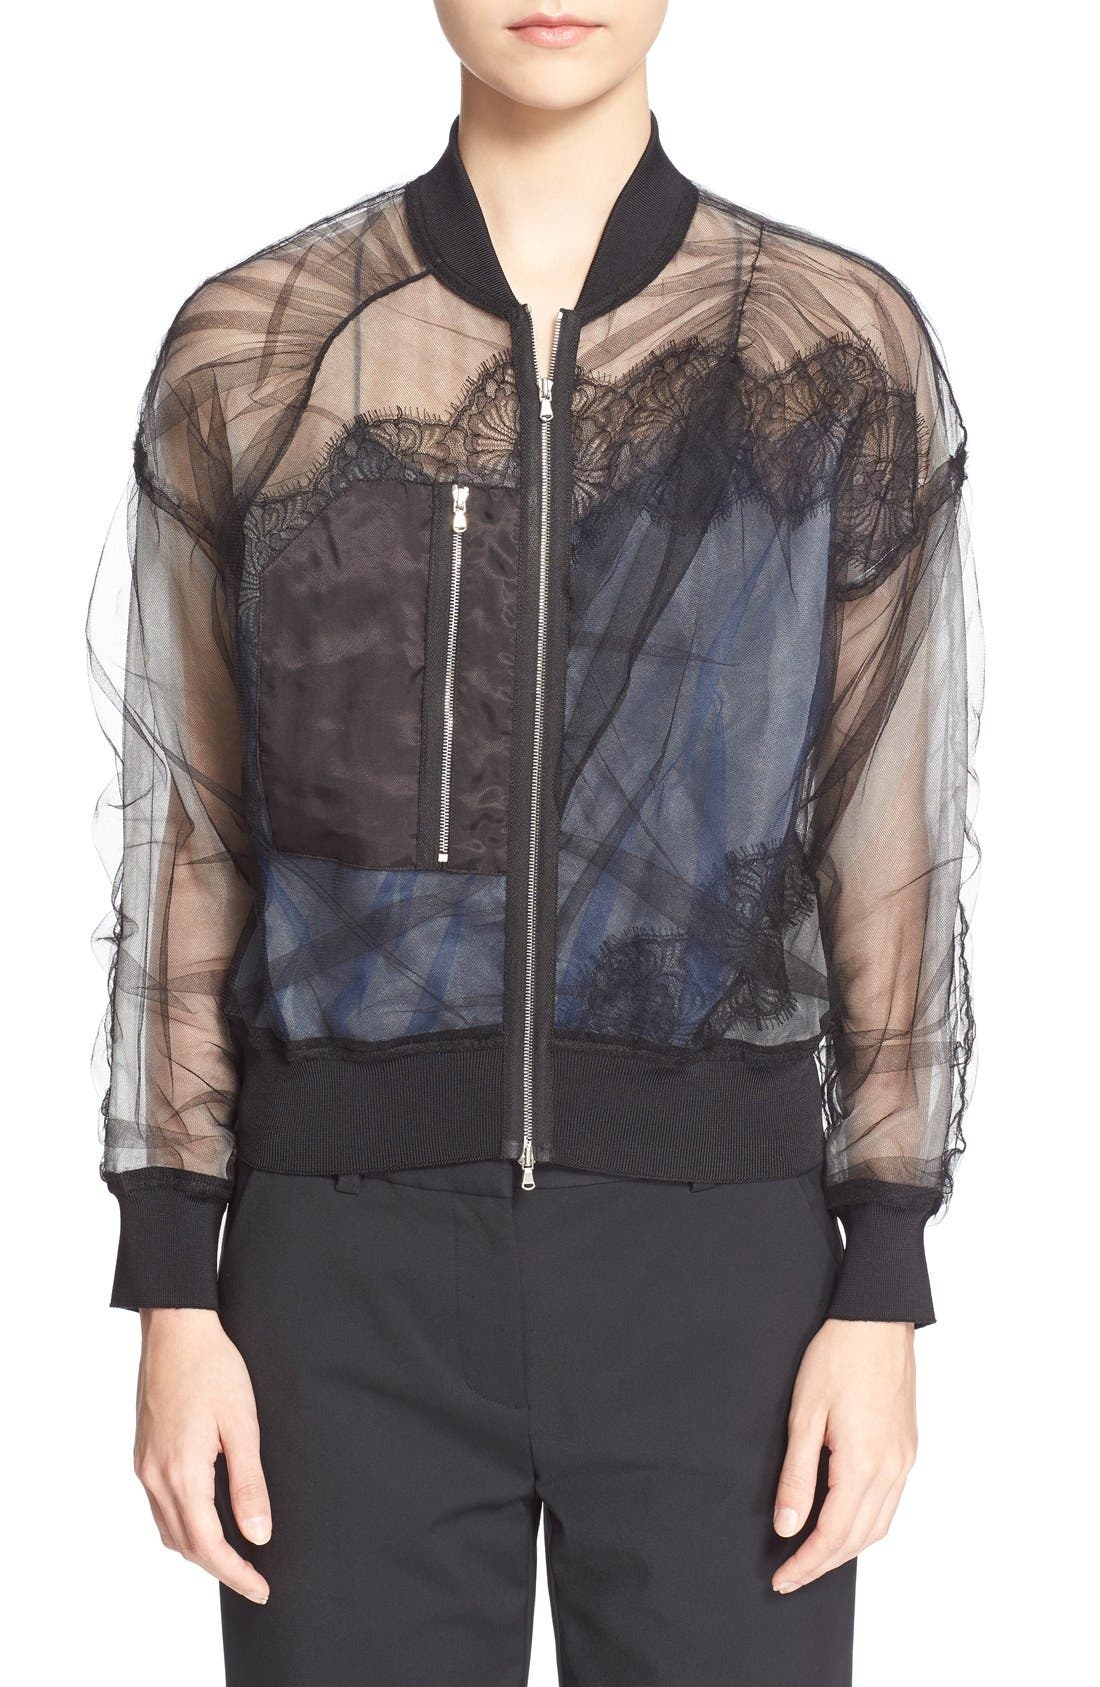 Alternate Image 1 Selected - 3.1 Phillip Lim Gathered Sheer Chiffon Bomber Jacket